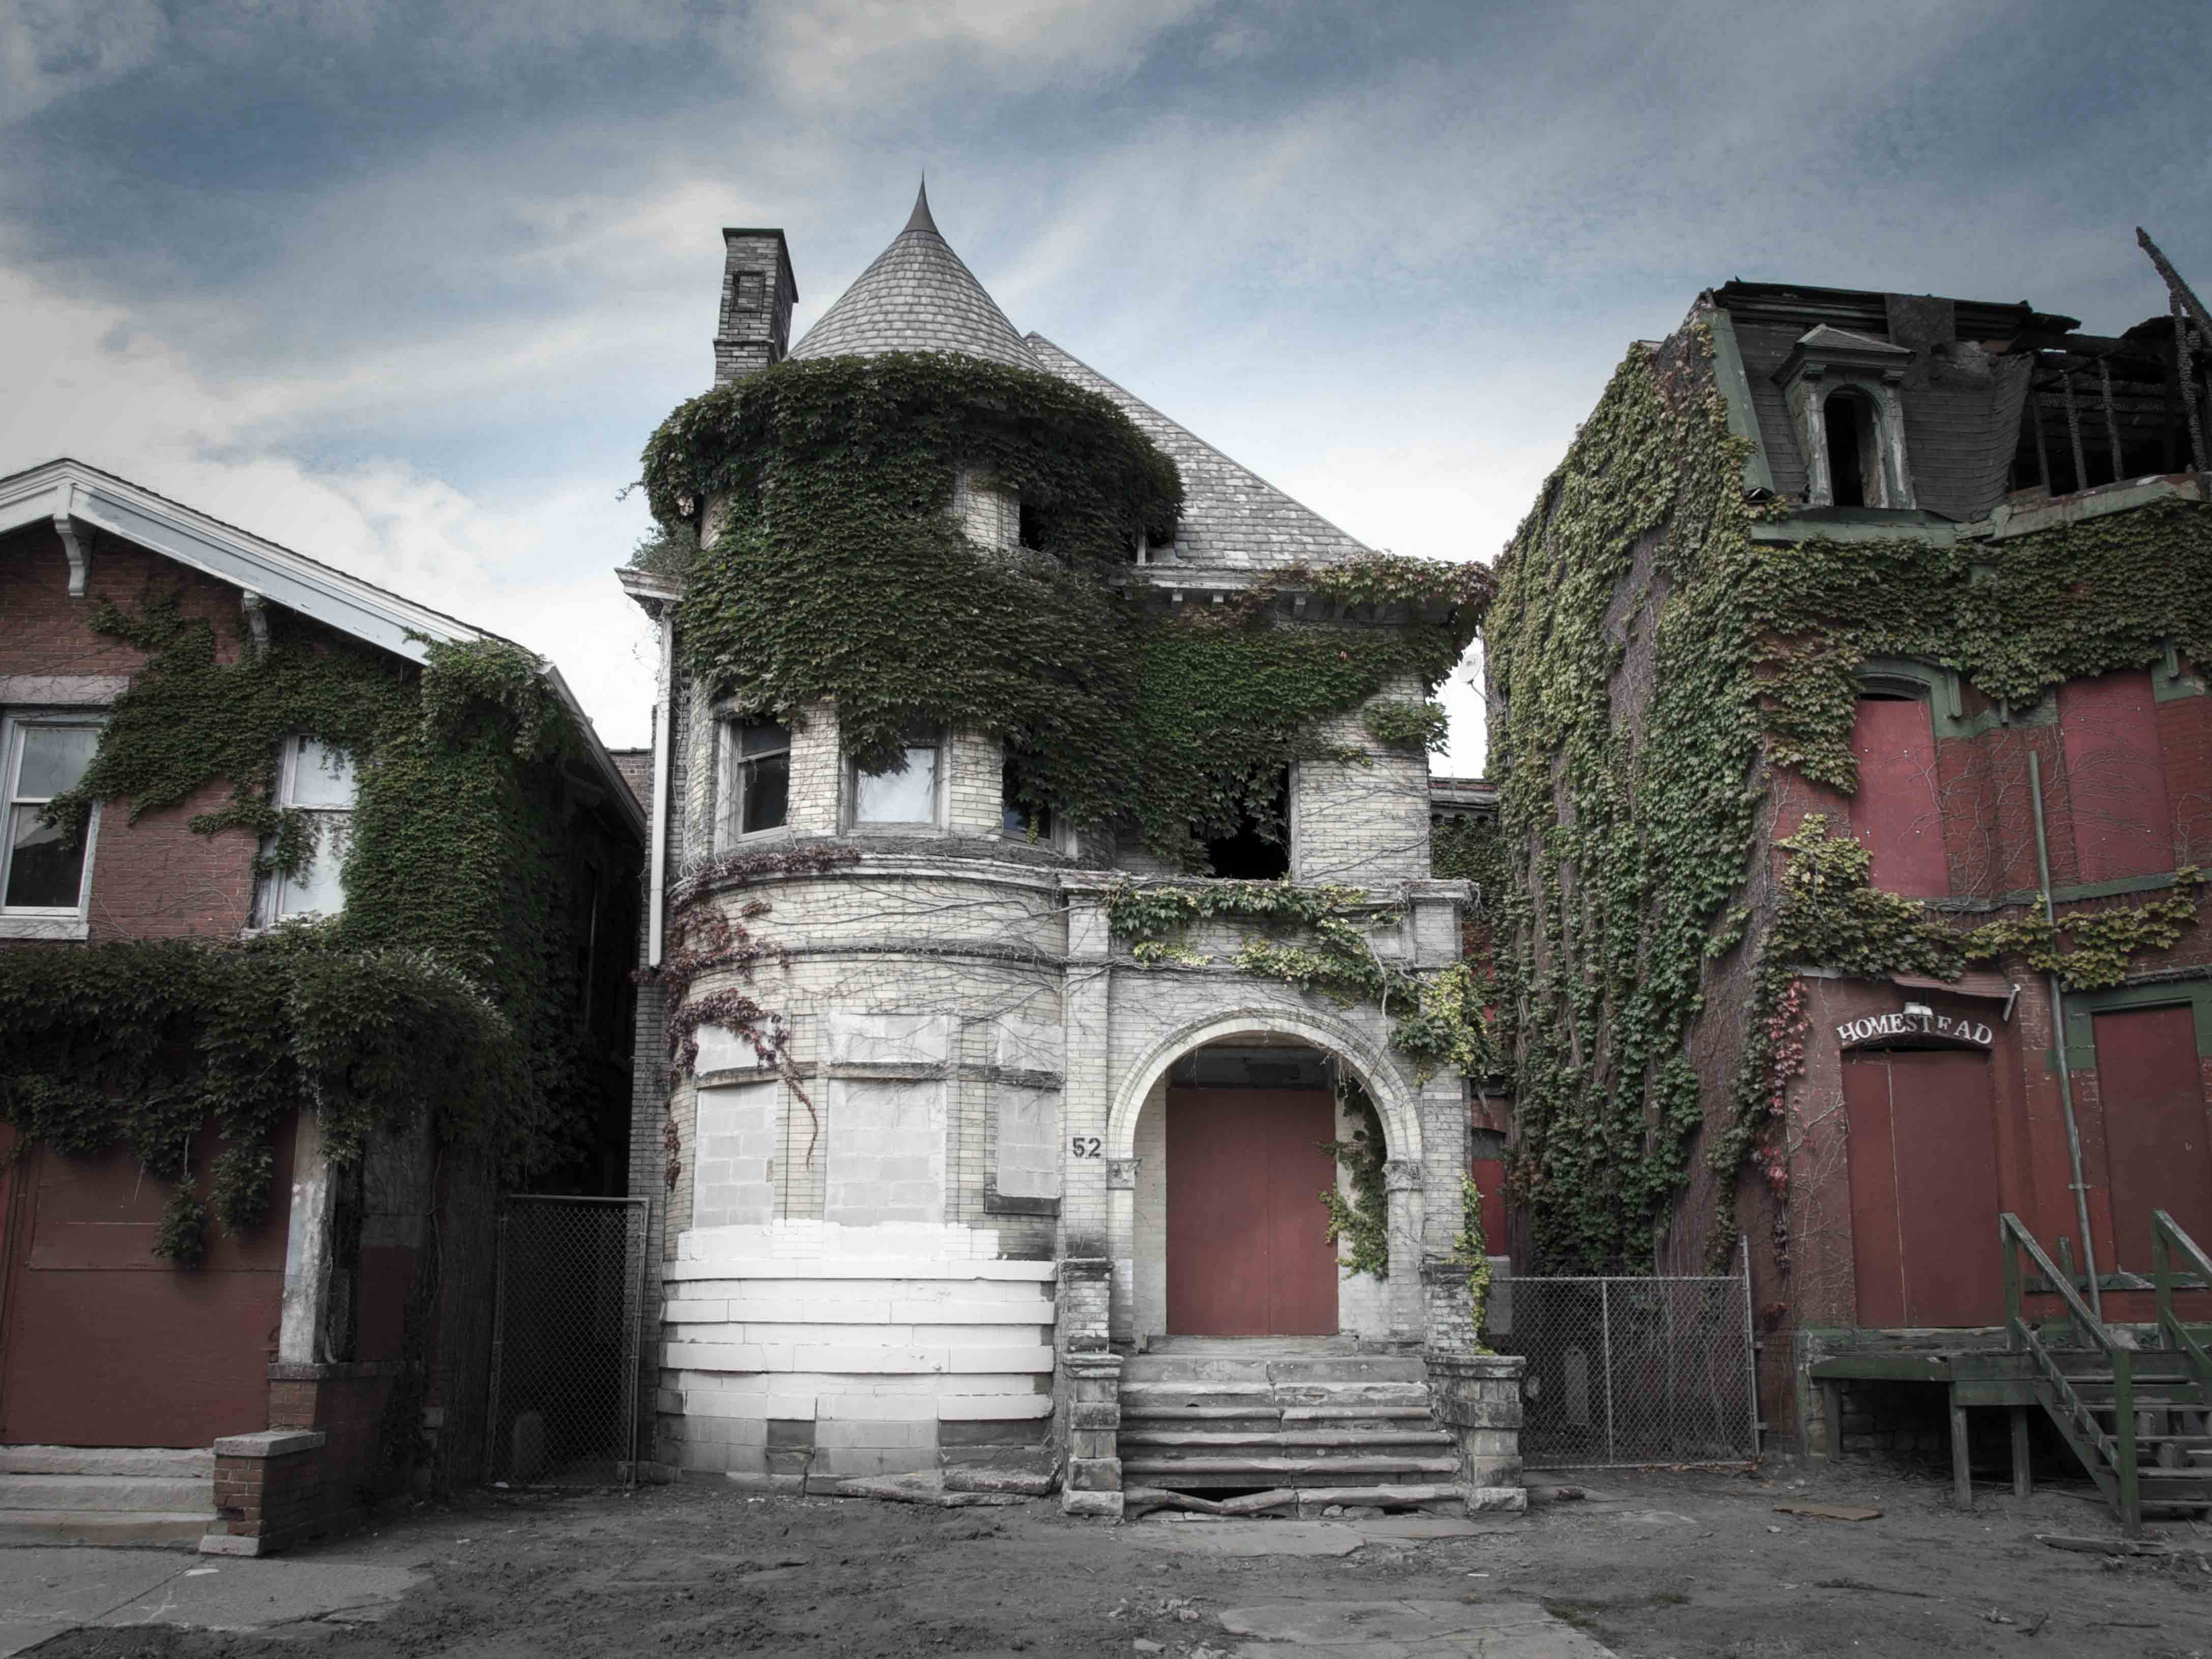 Detroit has no shortage of ghost stories, especially on Temple Street. This dilapidated Victorian mansion was supposedly where three priests were murdered in 1942. Neighbors claimed they could even hear the ghosts from across the street. The home was recently demolished to make way for new developments.